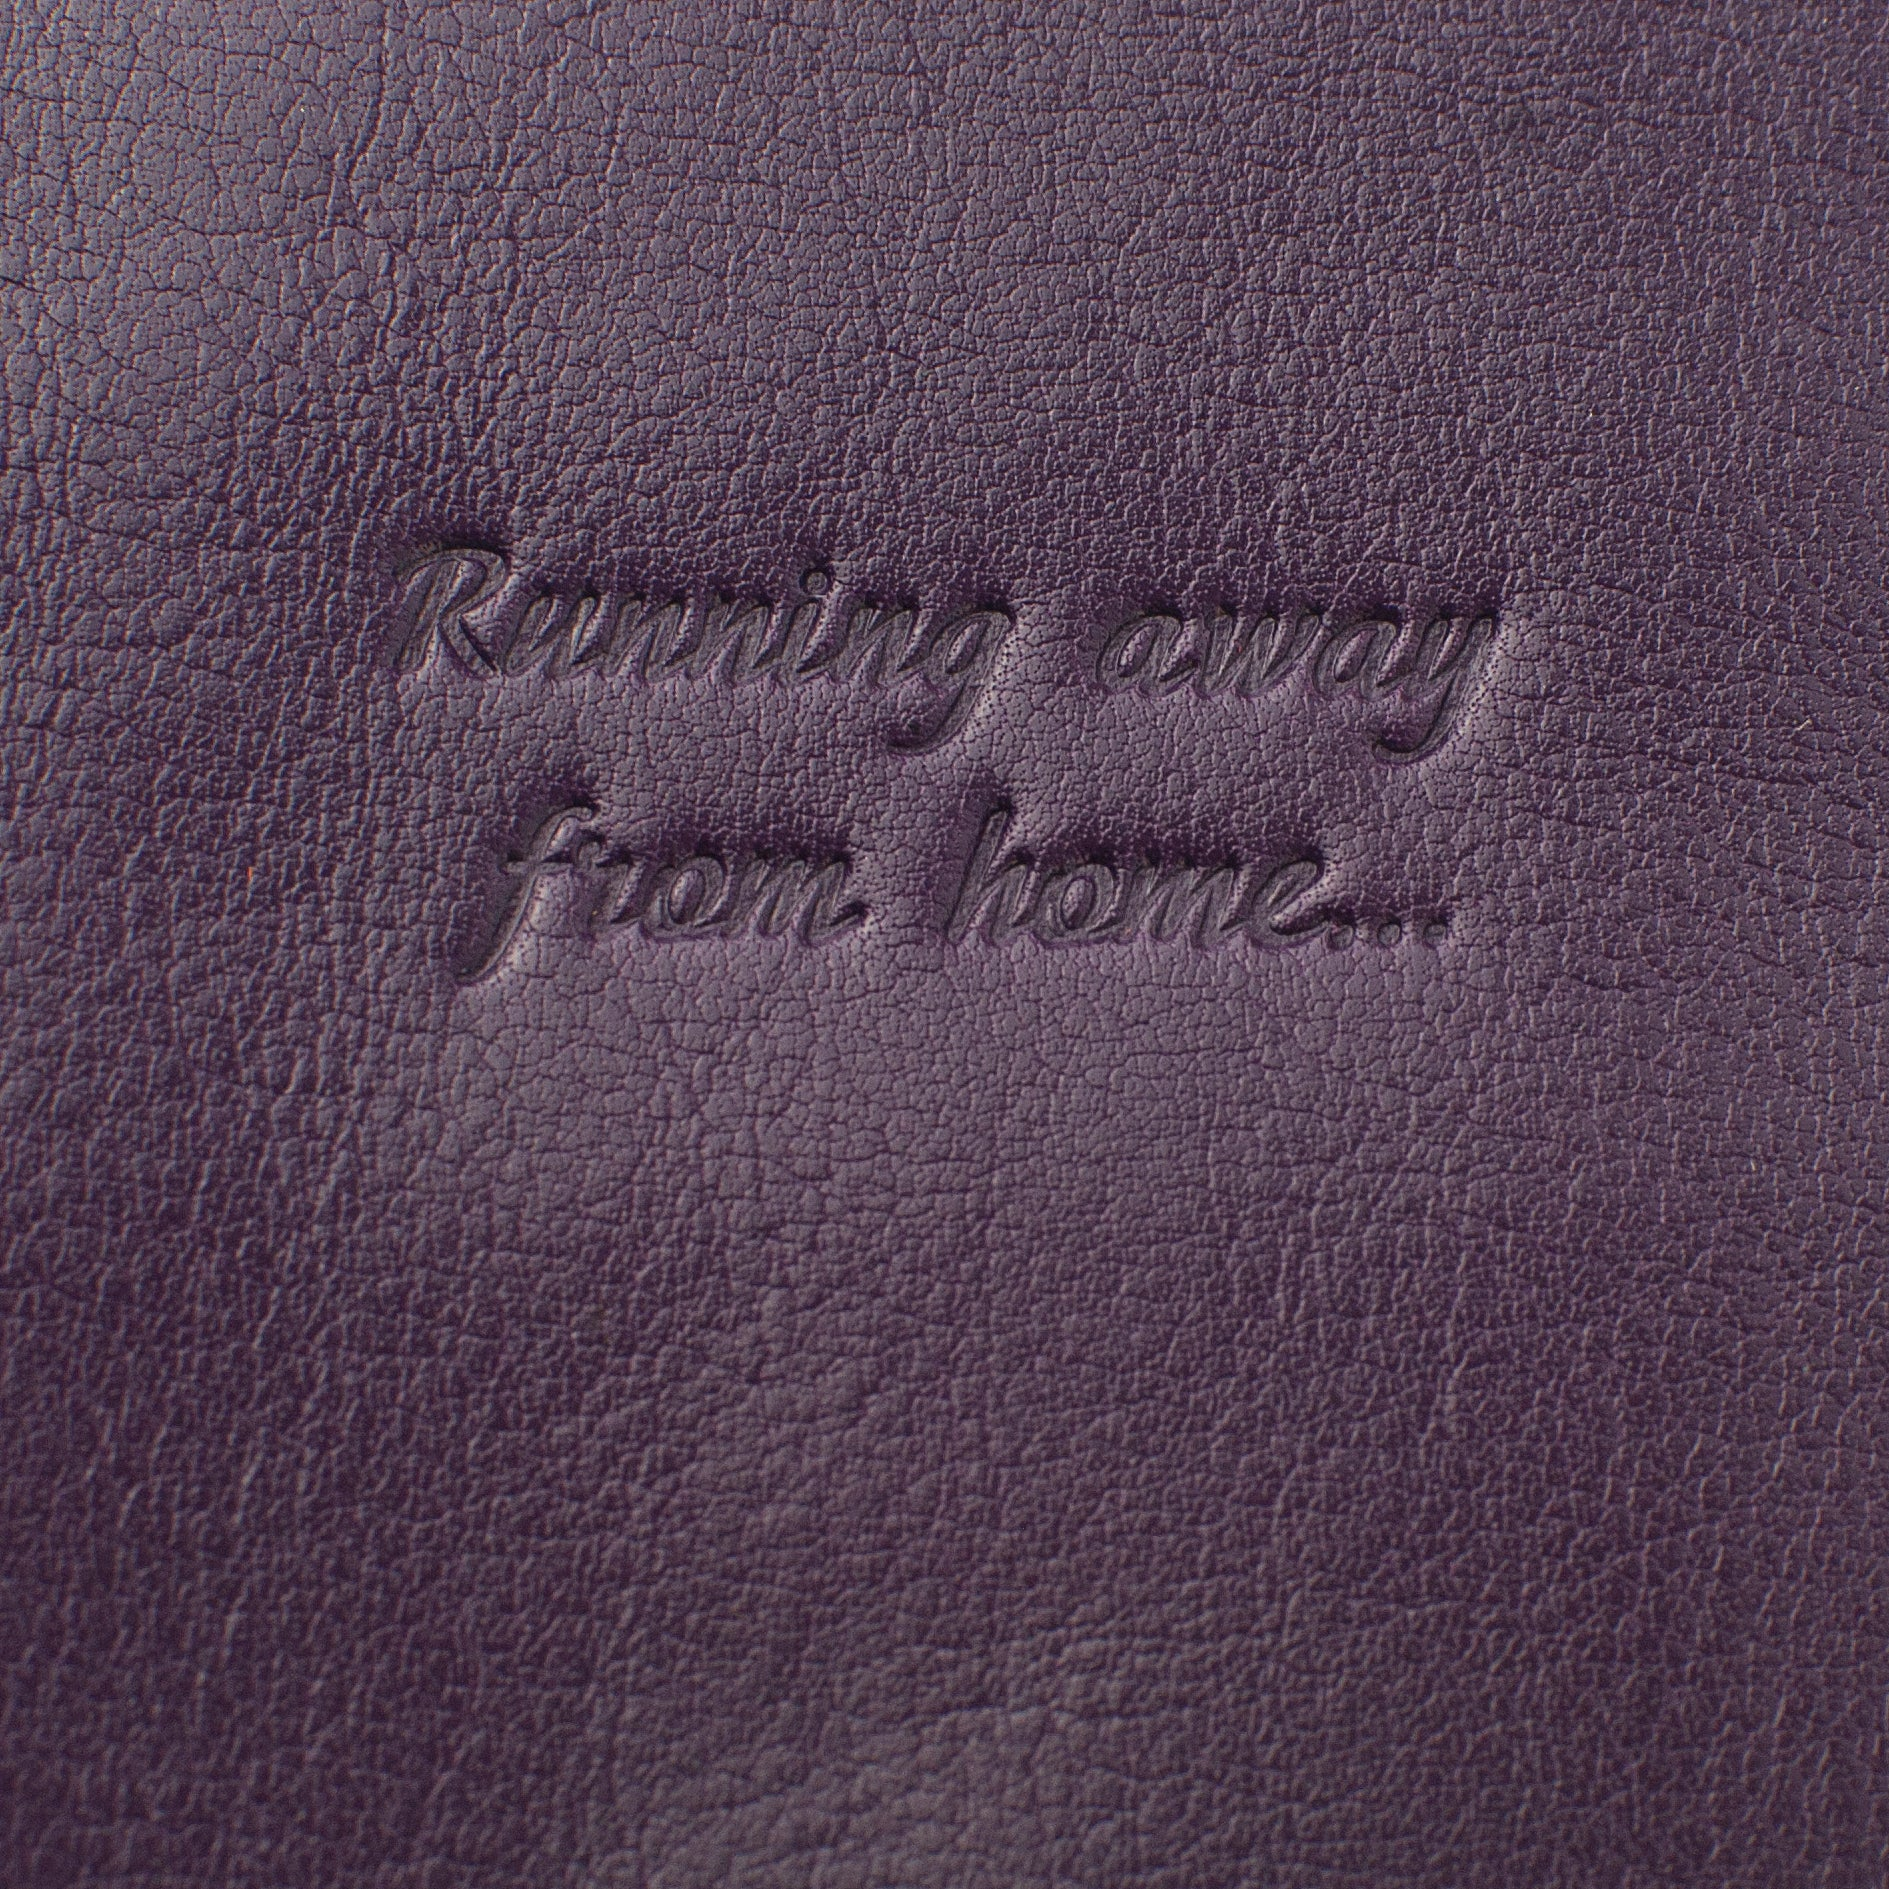 Deluxe Passport Cover with Card Slots ~ Eggplant Purple Genuine Leather